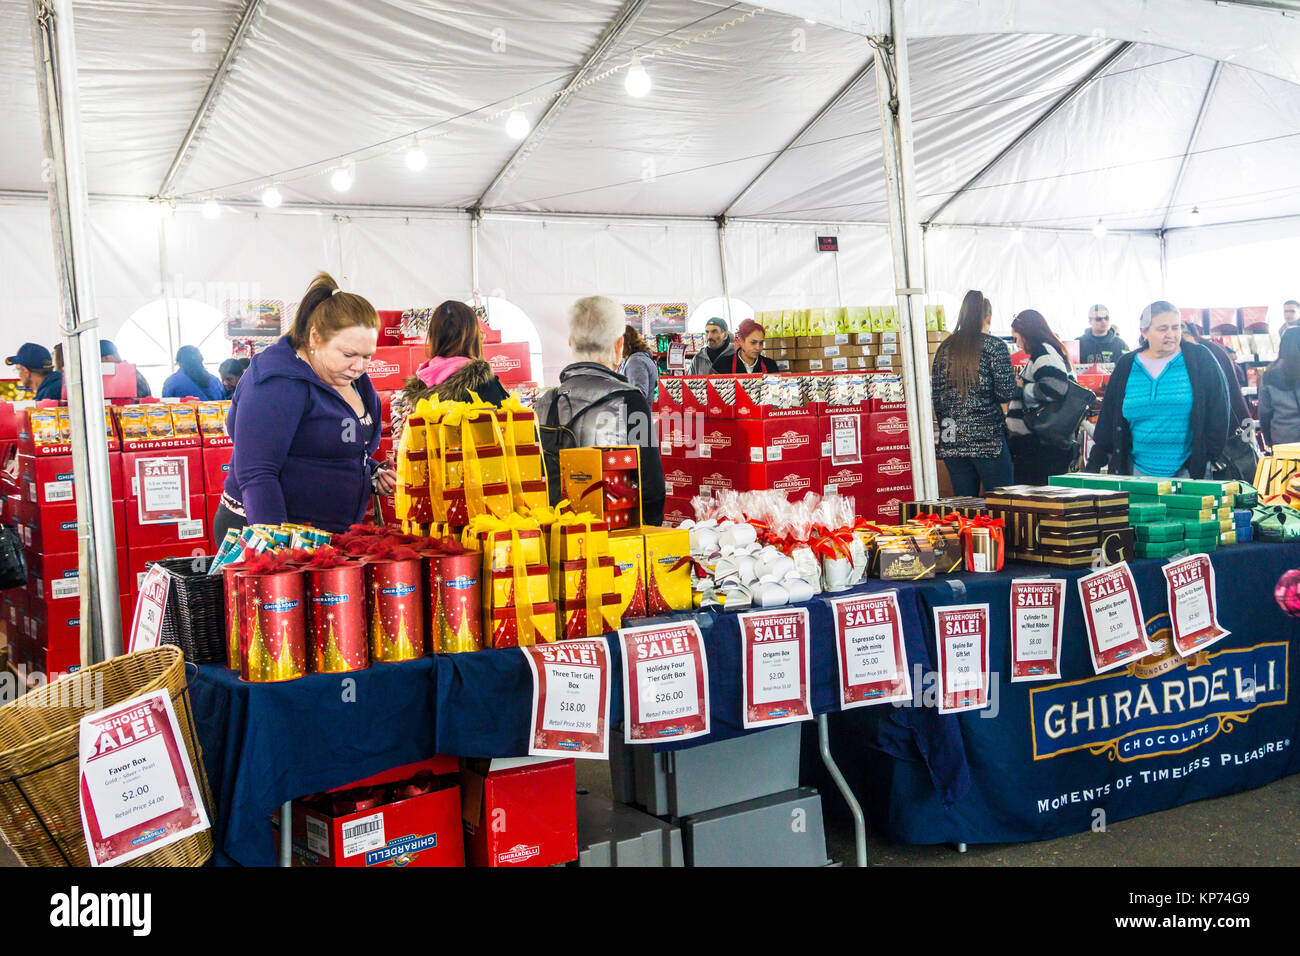 A Christmas tent sale at the Ghirardelli Chocolate factory